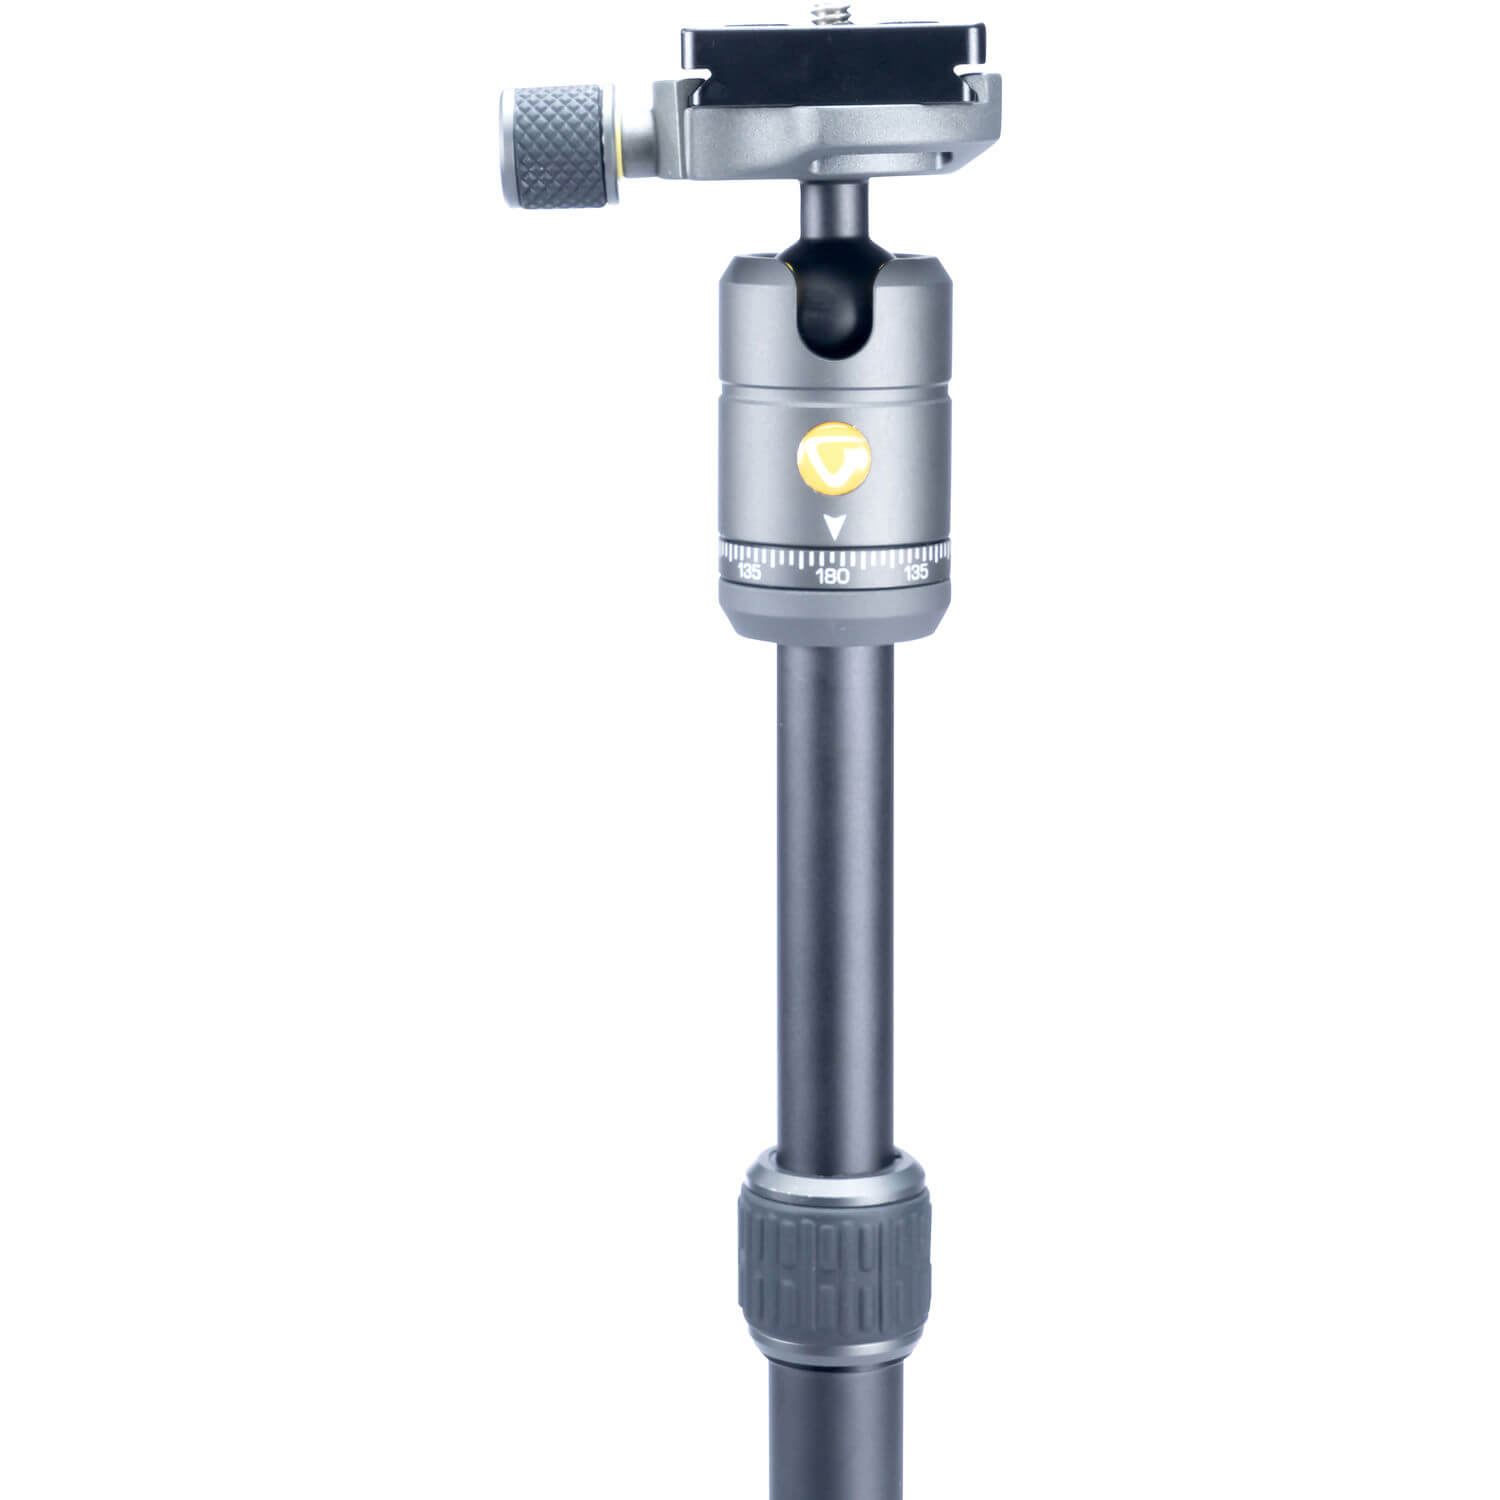 Vanguard VEO2 GO204 Aluminium Tripod with Ball Head 13